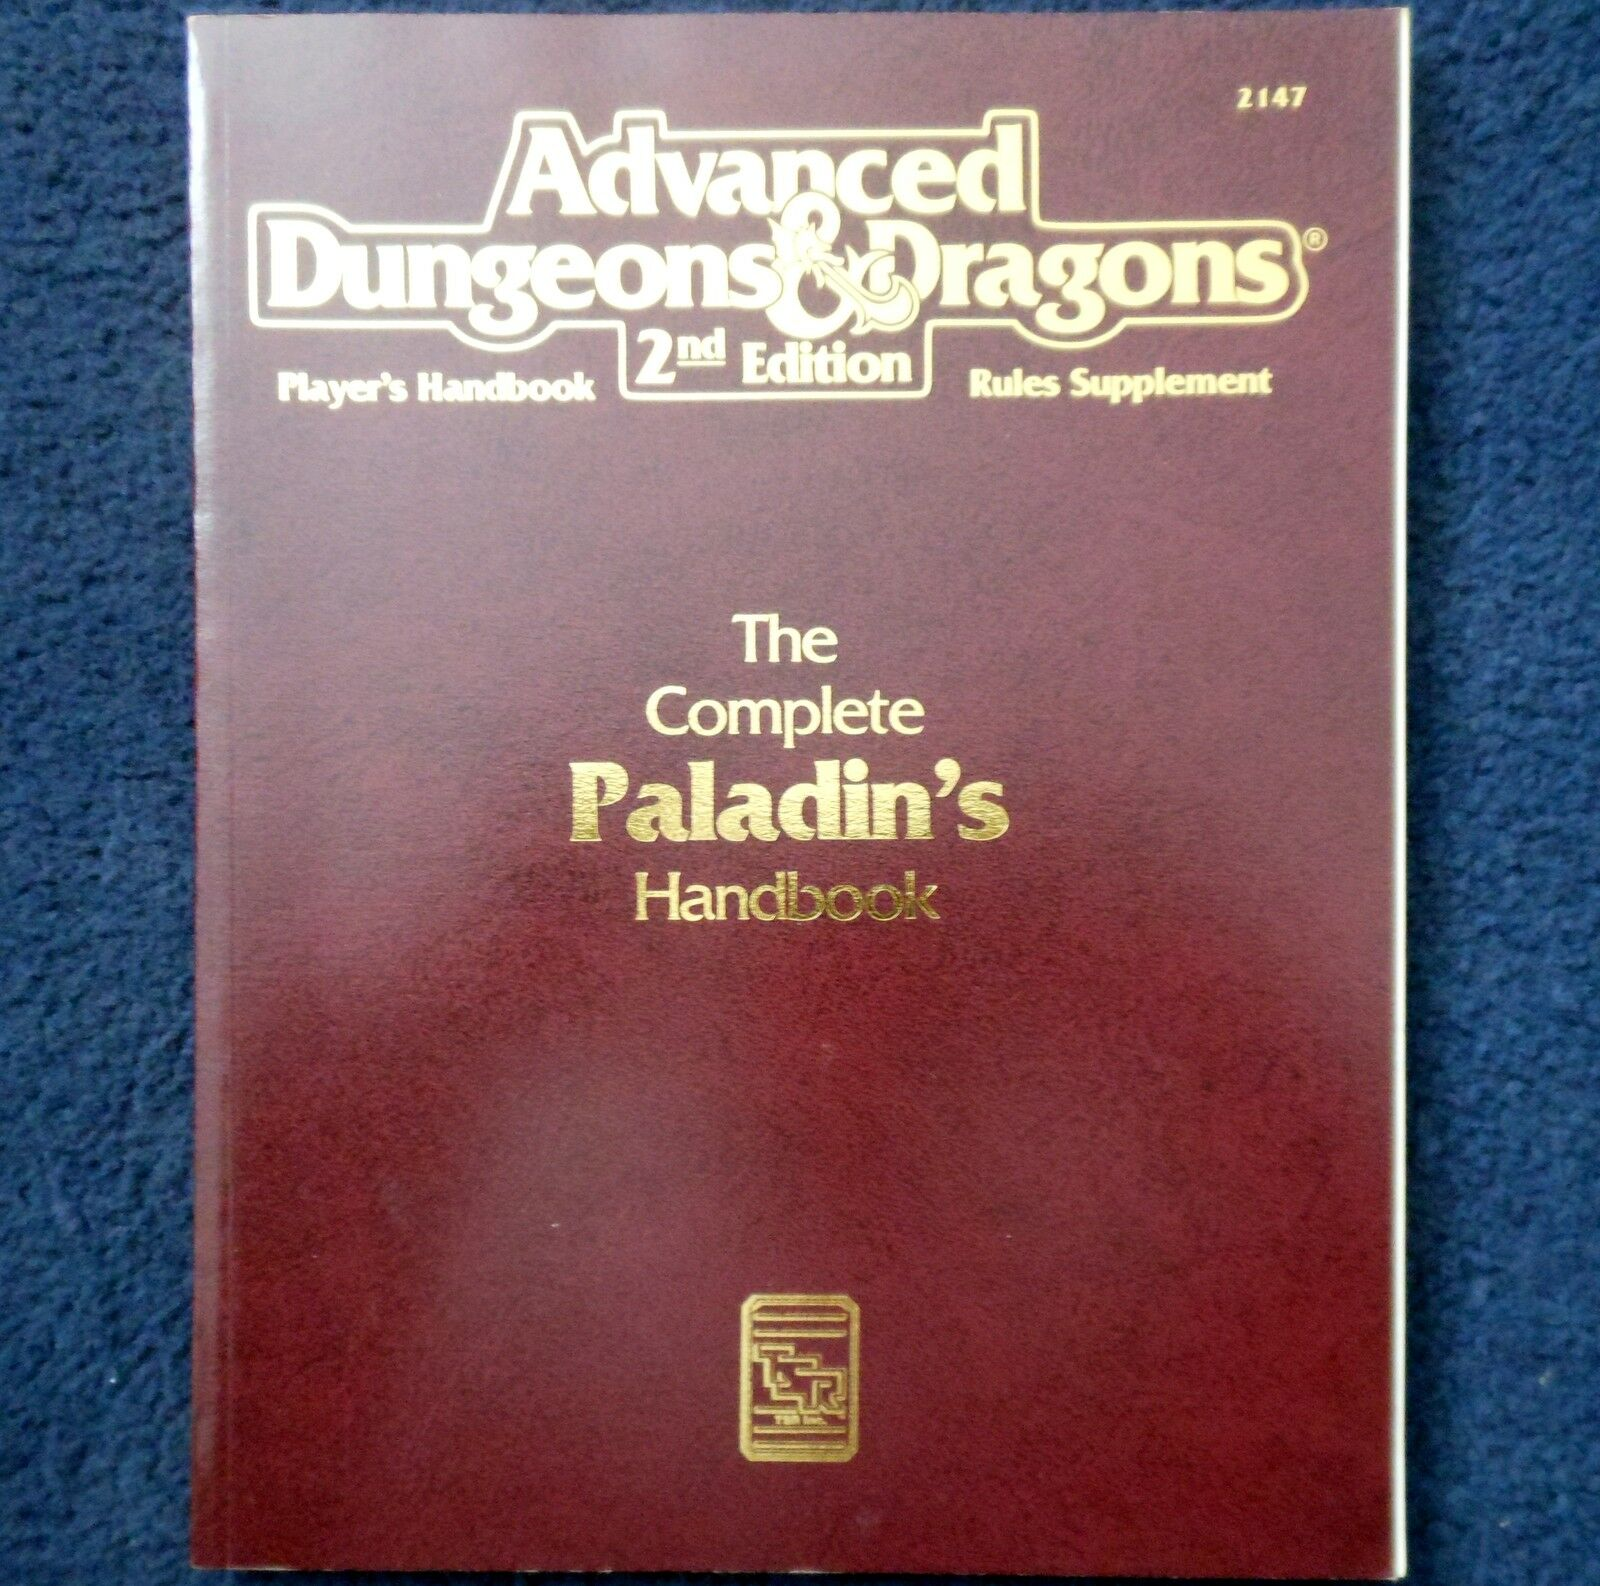 2110 The Complete Fighters Handbook Advanced Dungeons & Dragons D&D RPG Players